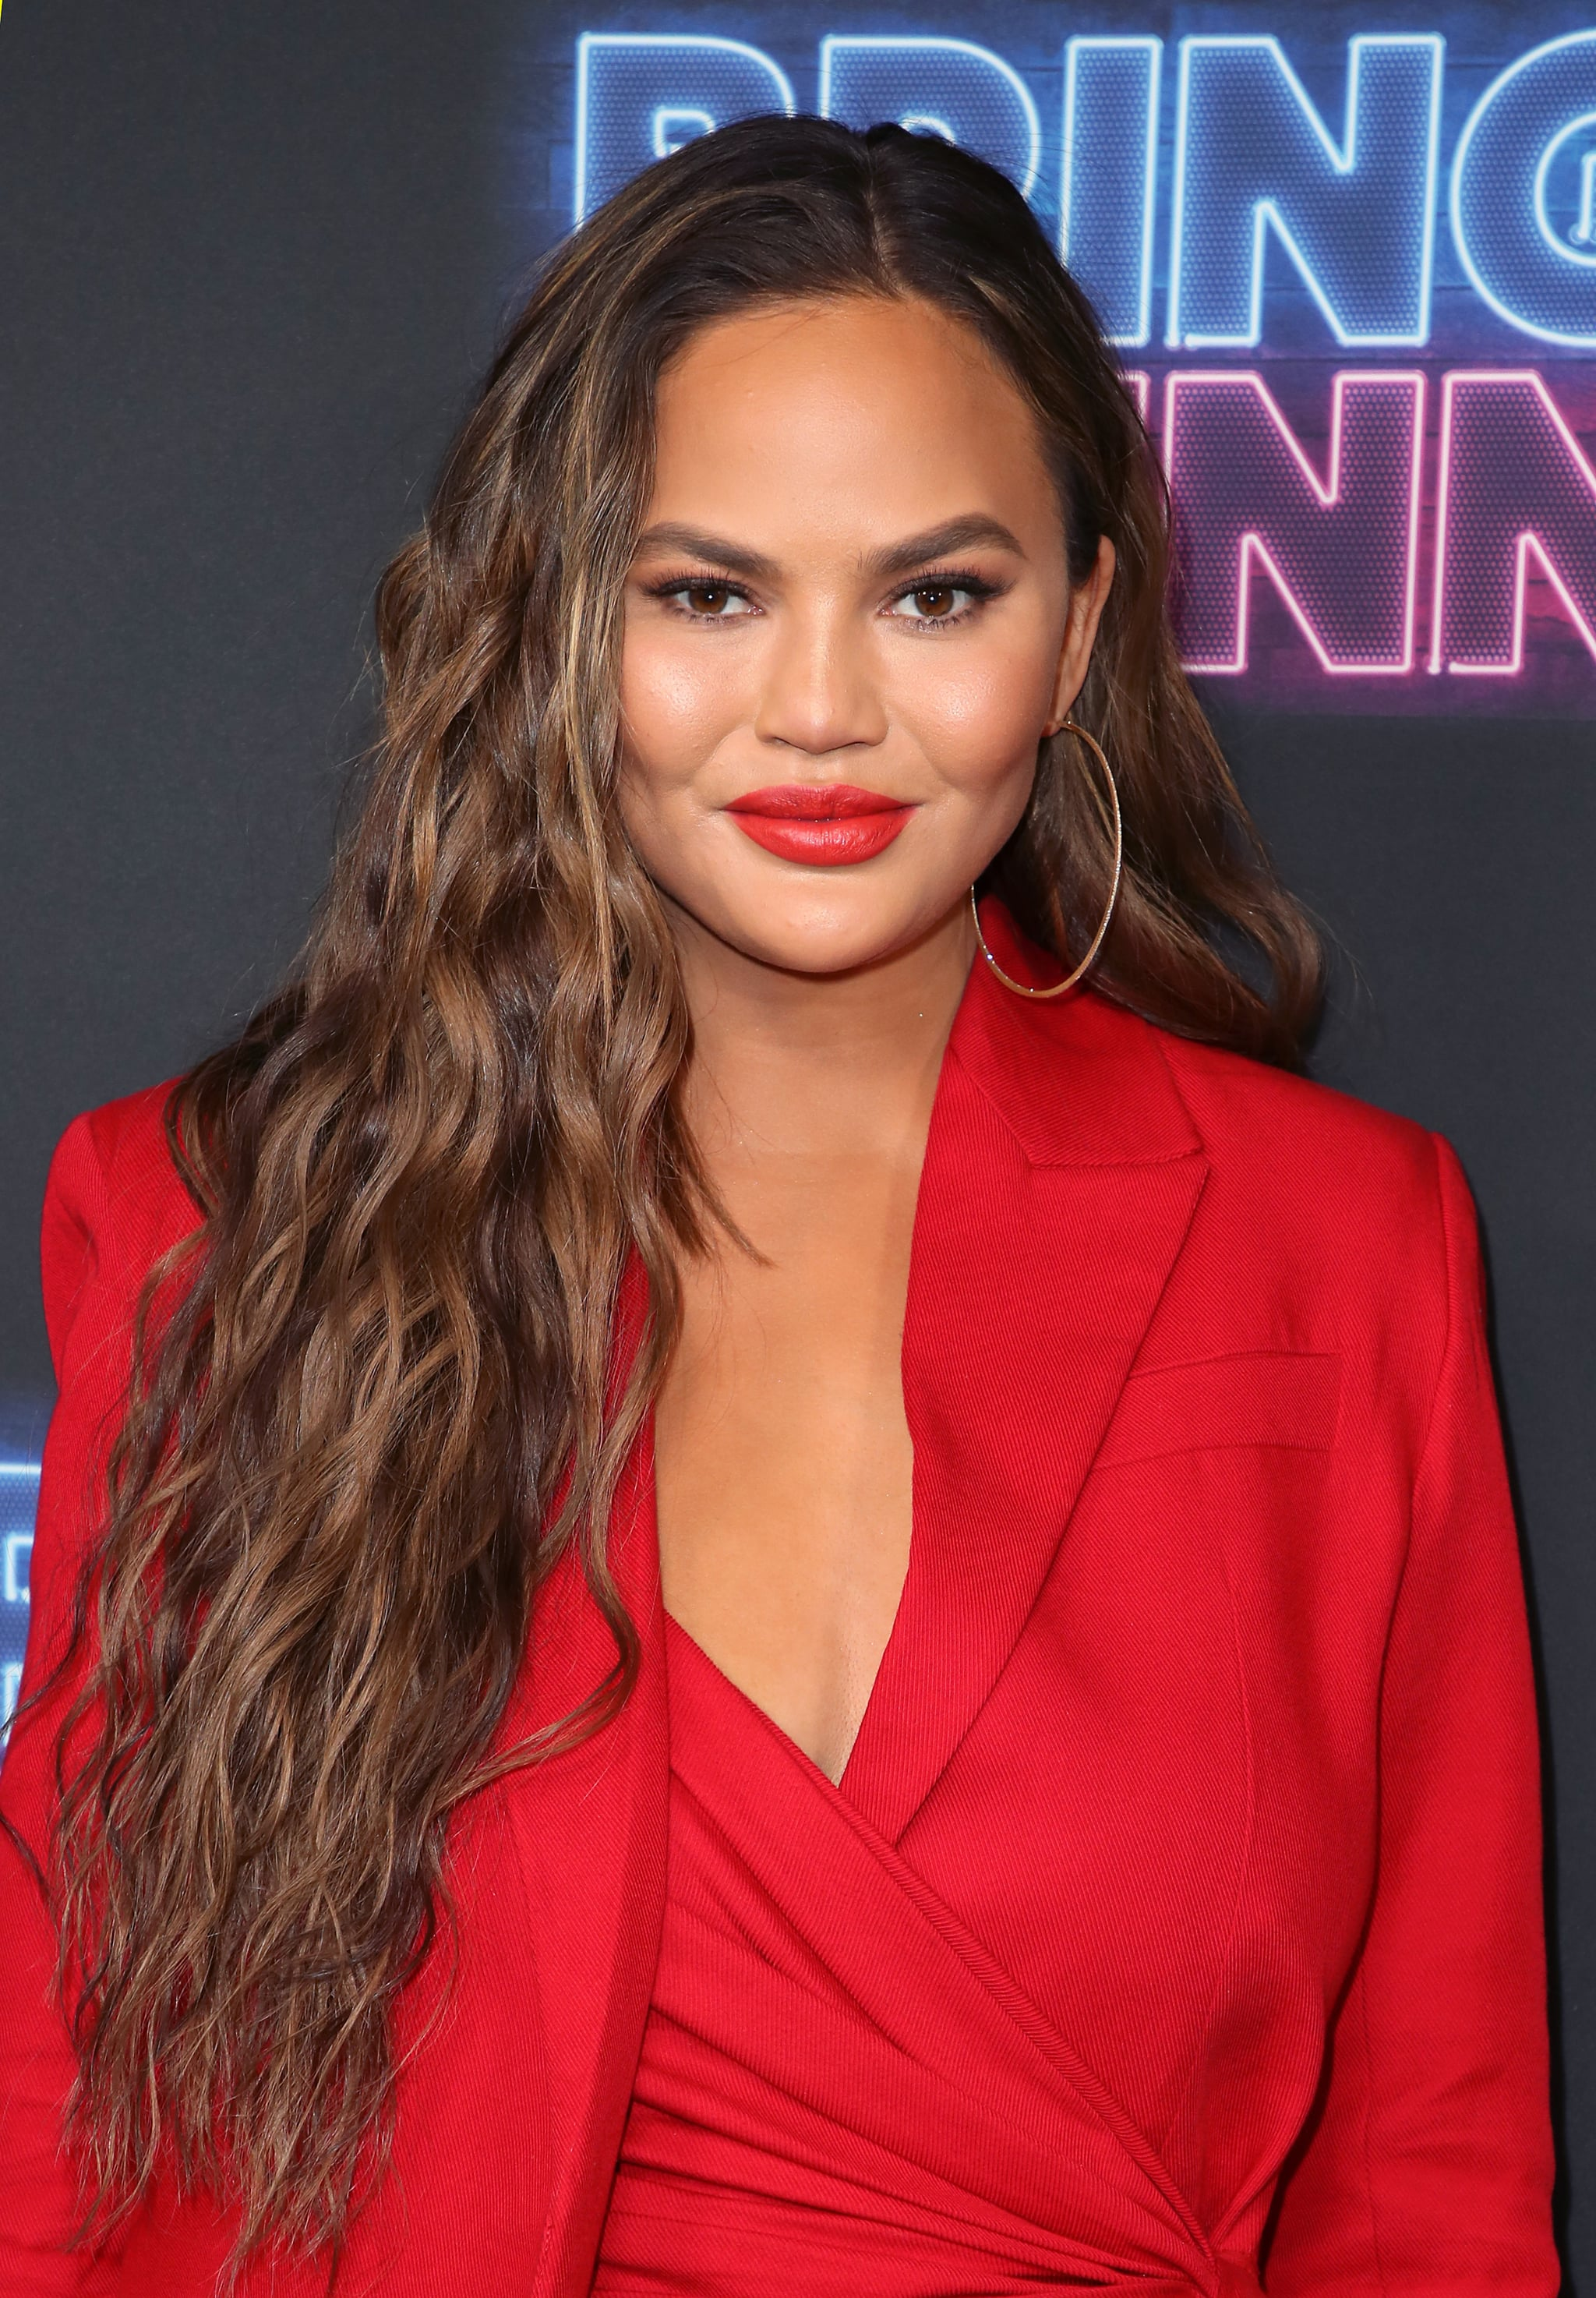 LOS ANGELES, CALIFORNIA - JUNE 26: Chrissy Teigen attends the premiere of NBC's